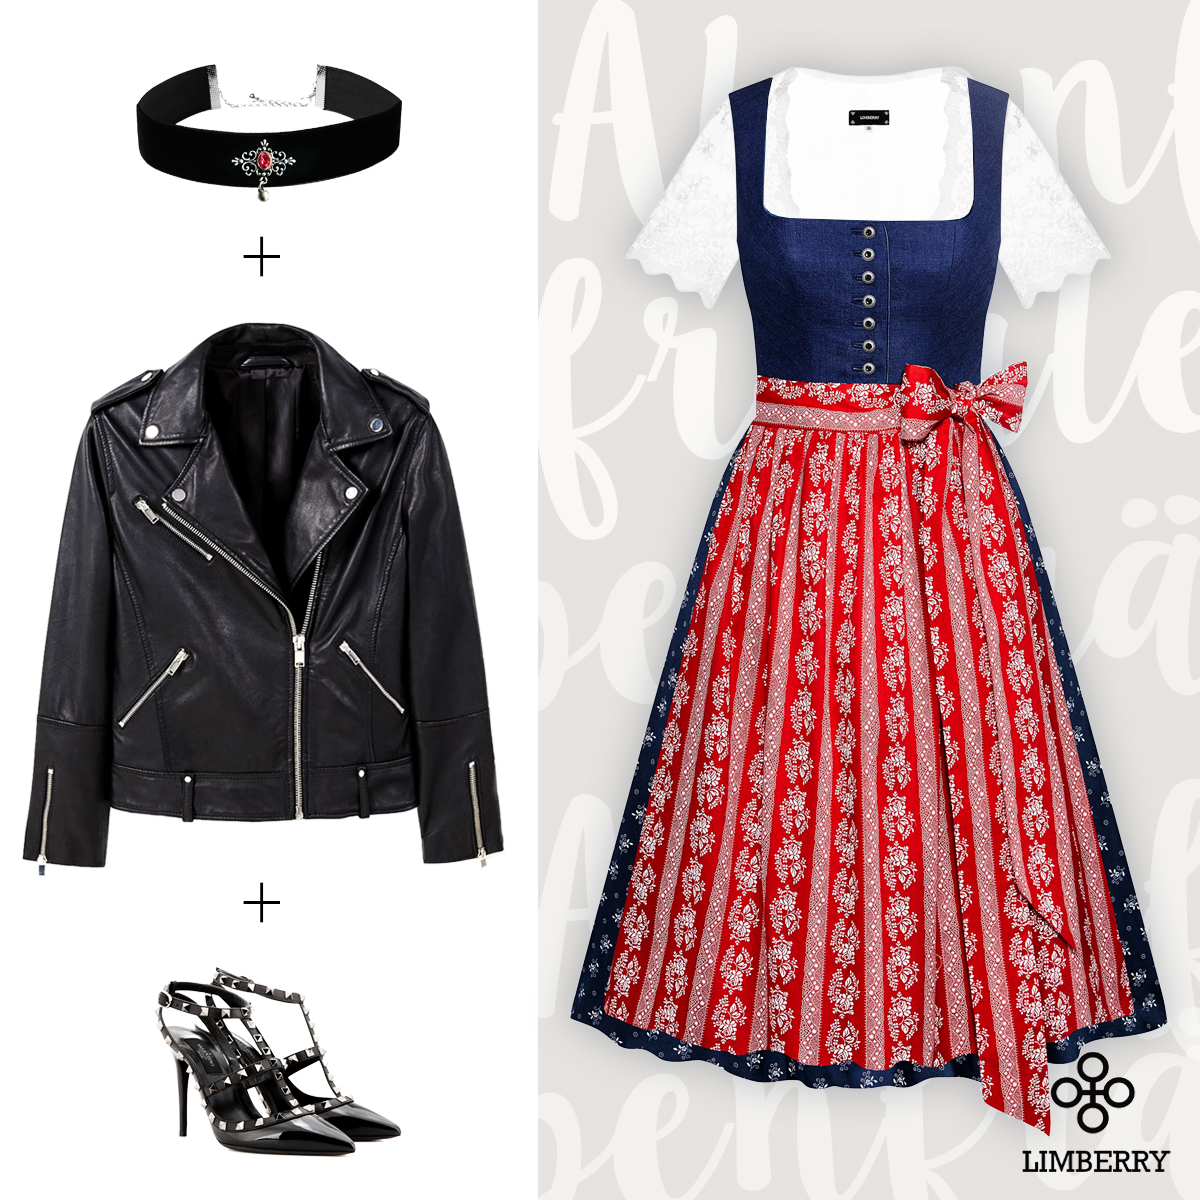 1-dirndl-4-looks-rock-dirndl-limberry